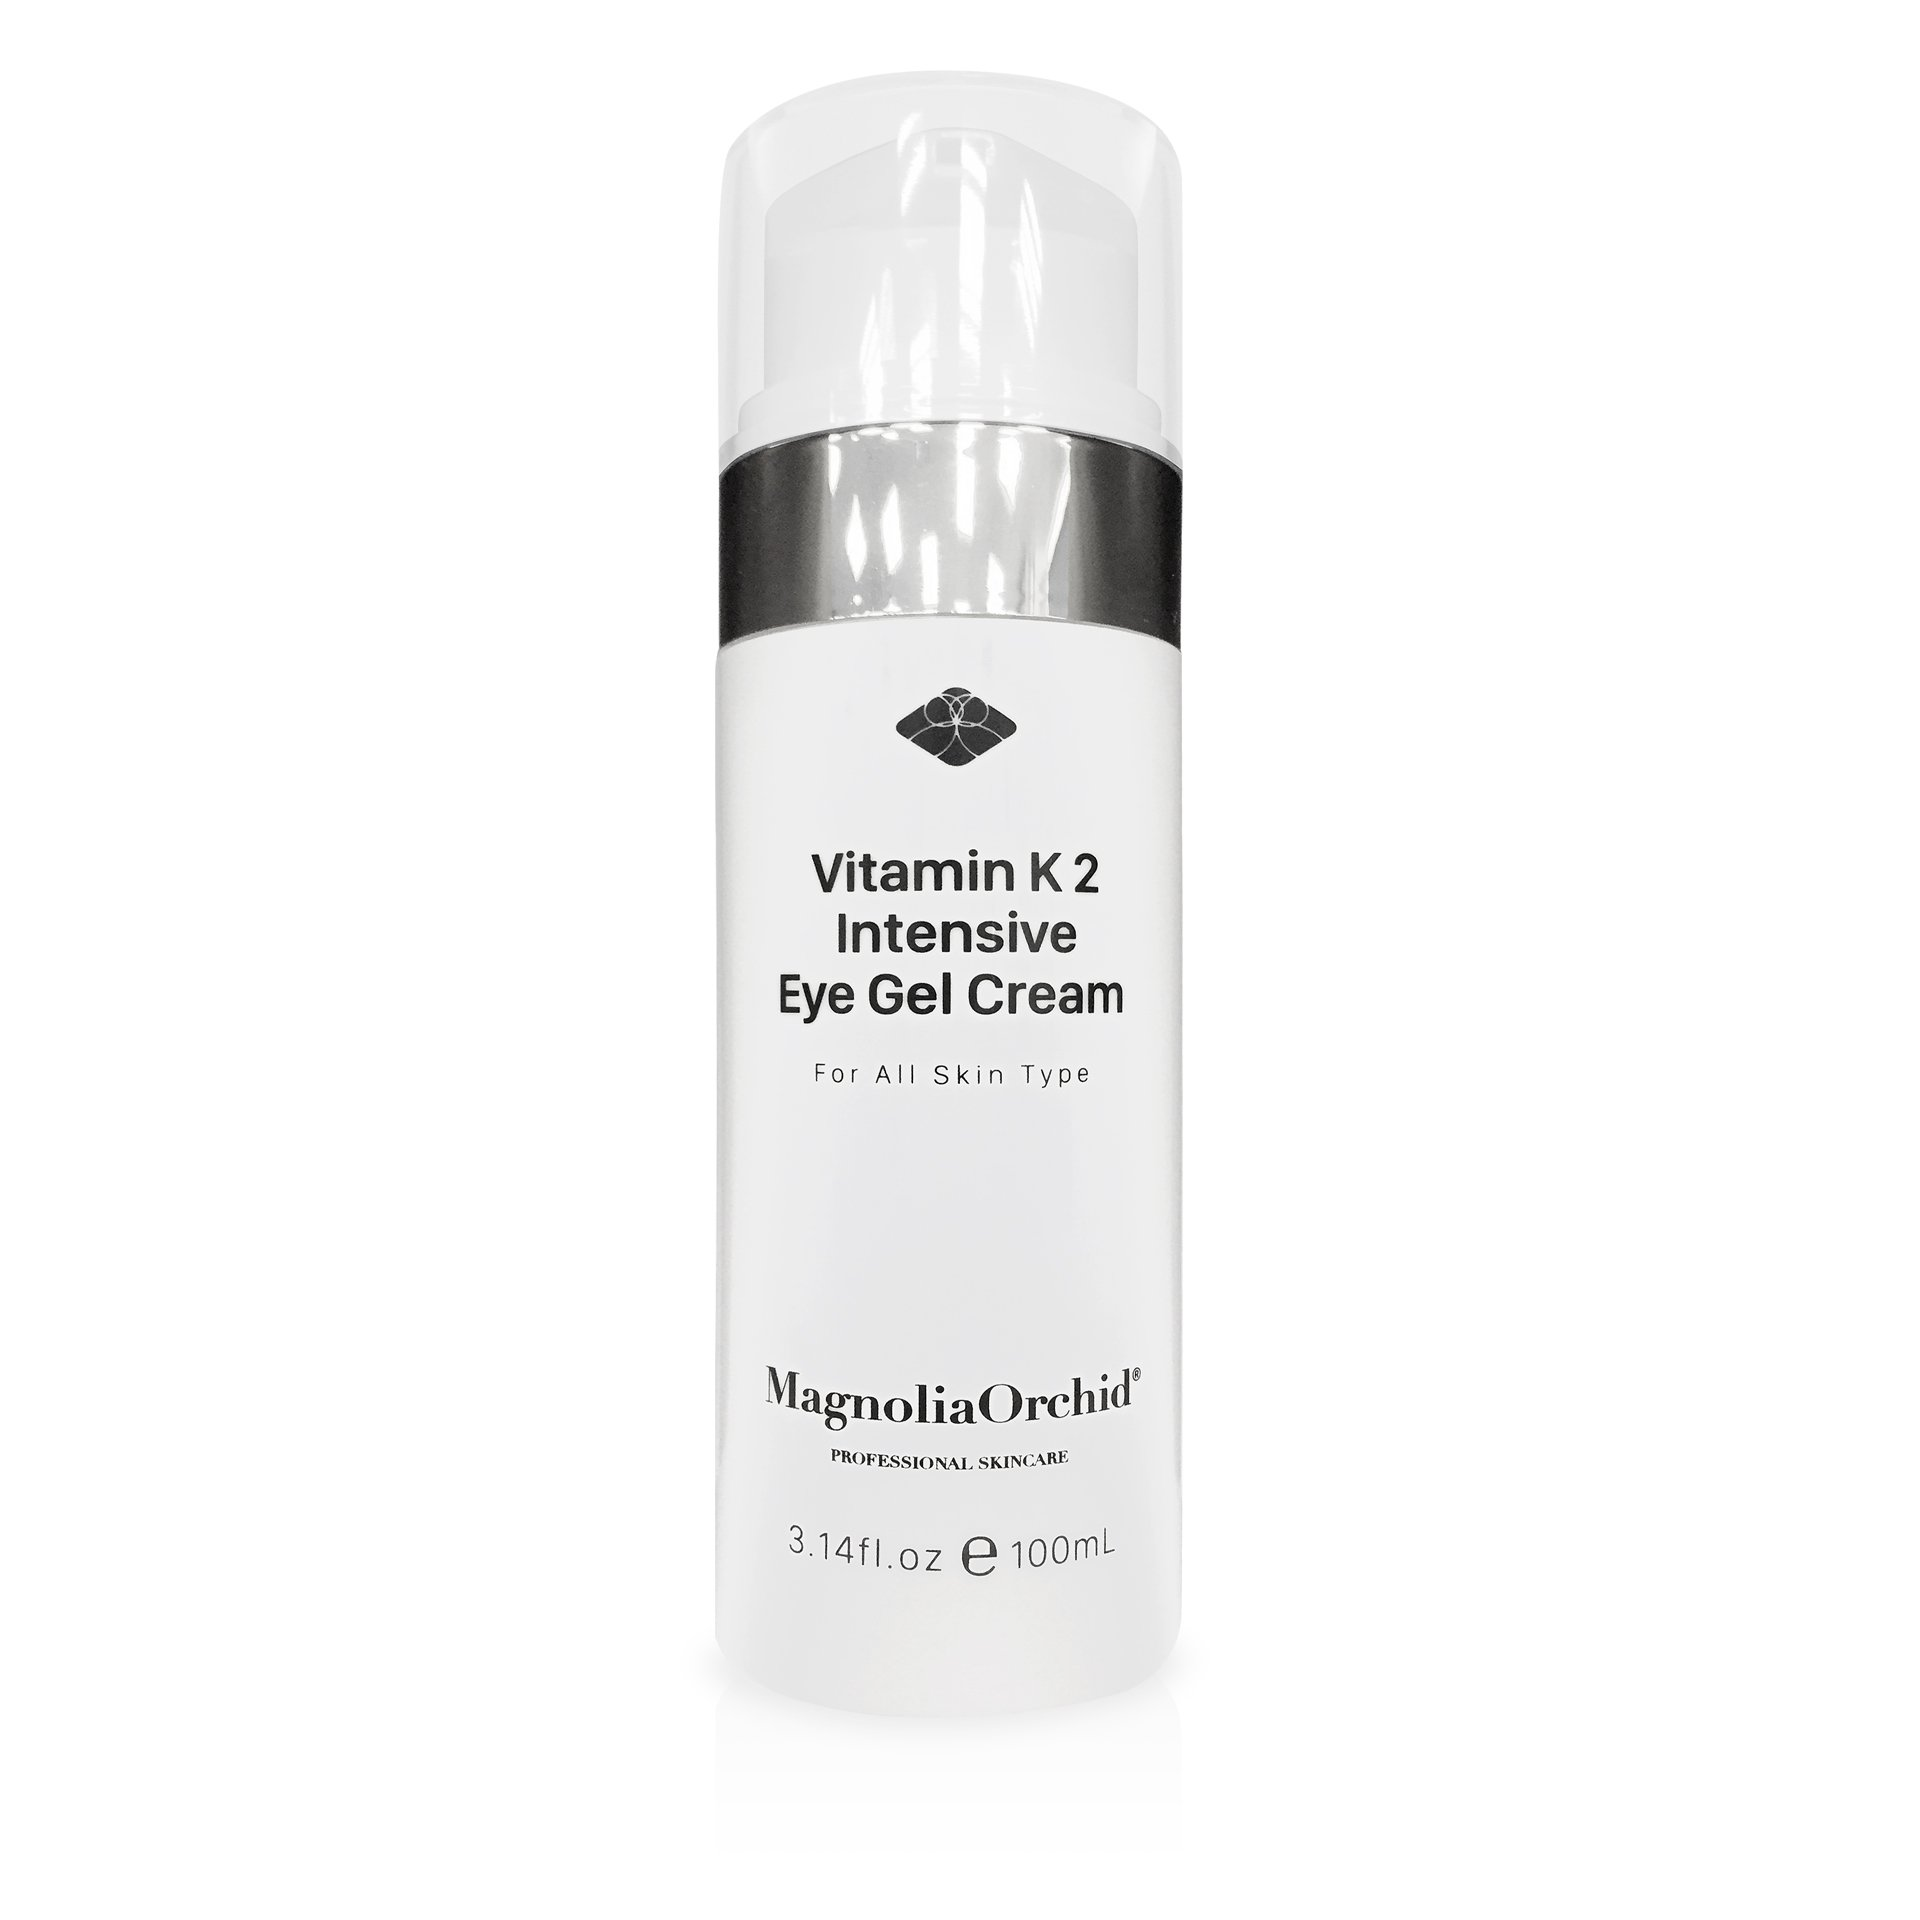 Magnolia Orchid Peptide All Around Eye Gel Bliss - The Youth As We Know It Anti-Aging Night Cream - 50ml/1.7oz